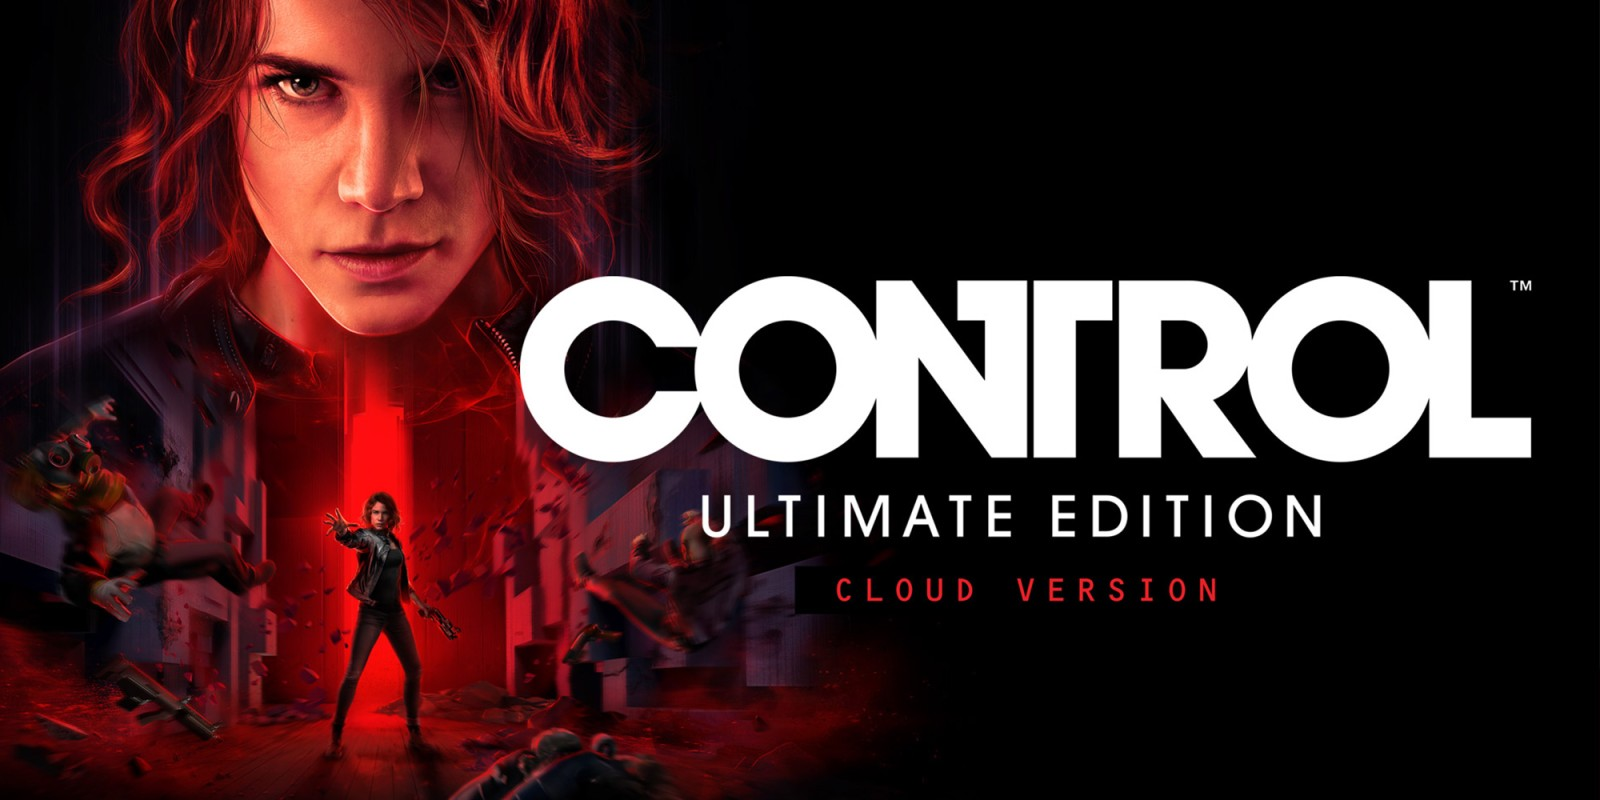 Control Ultimate Edition – Cloud Version